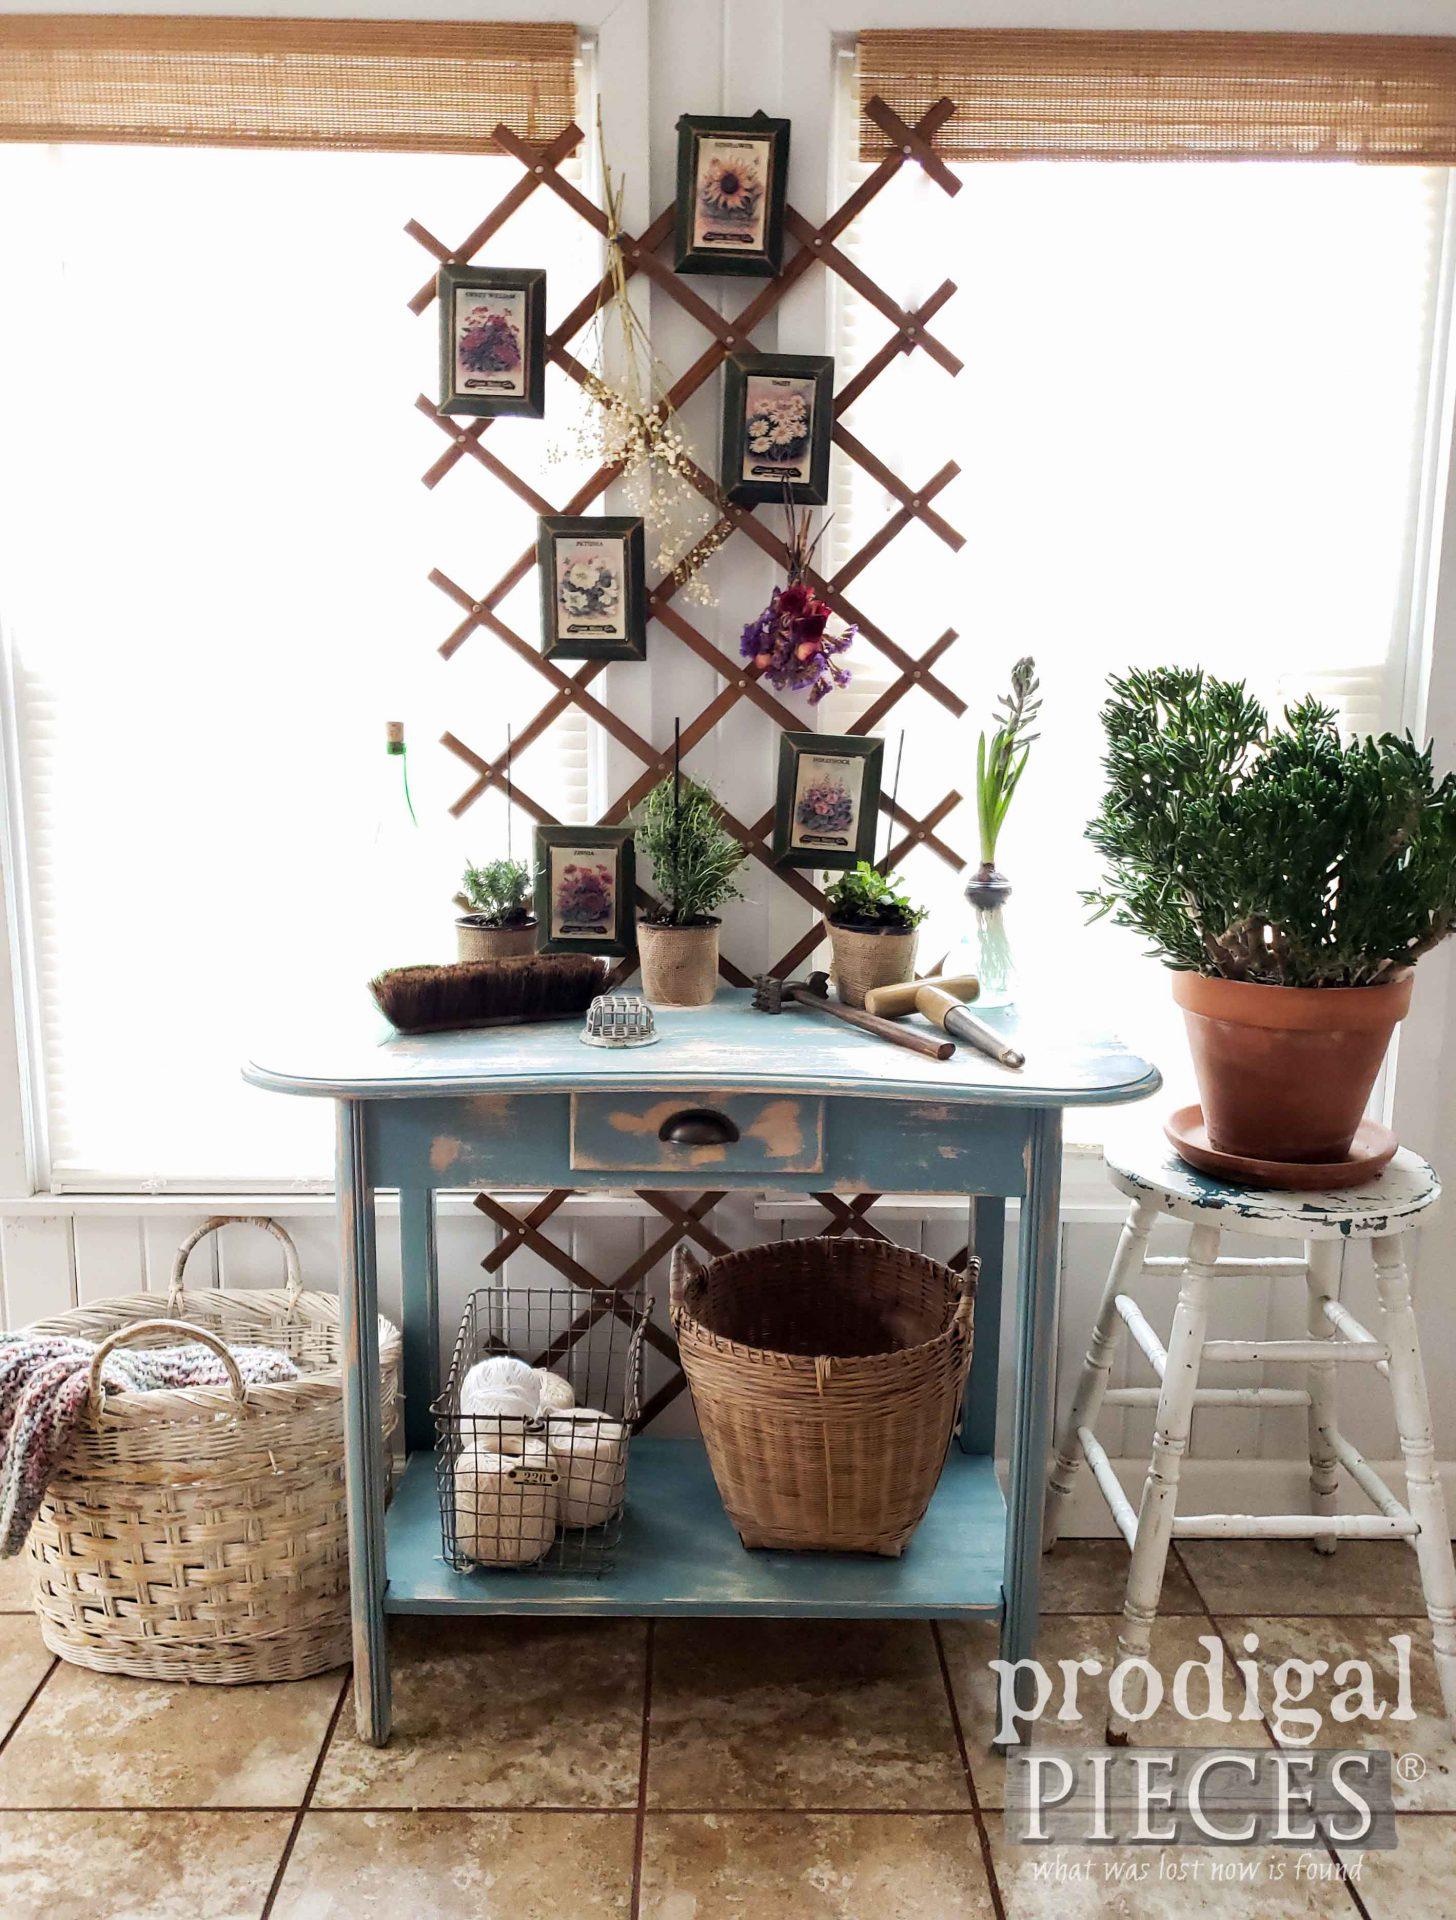 Farmhouse Style Spring Decor from Thrifted Finds by Larissa of Prodigal Pieces | prodigalpieces.com #prodigalpieces #diy #furniture #home #homedecor #spring